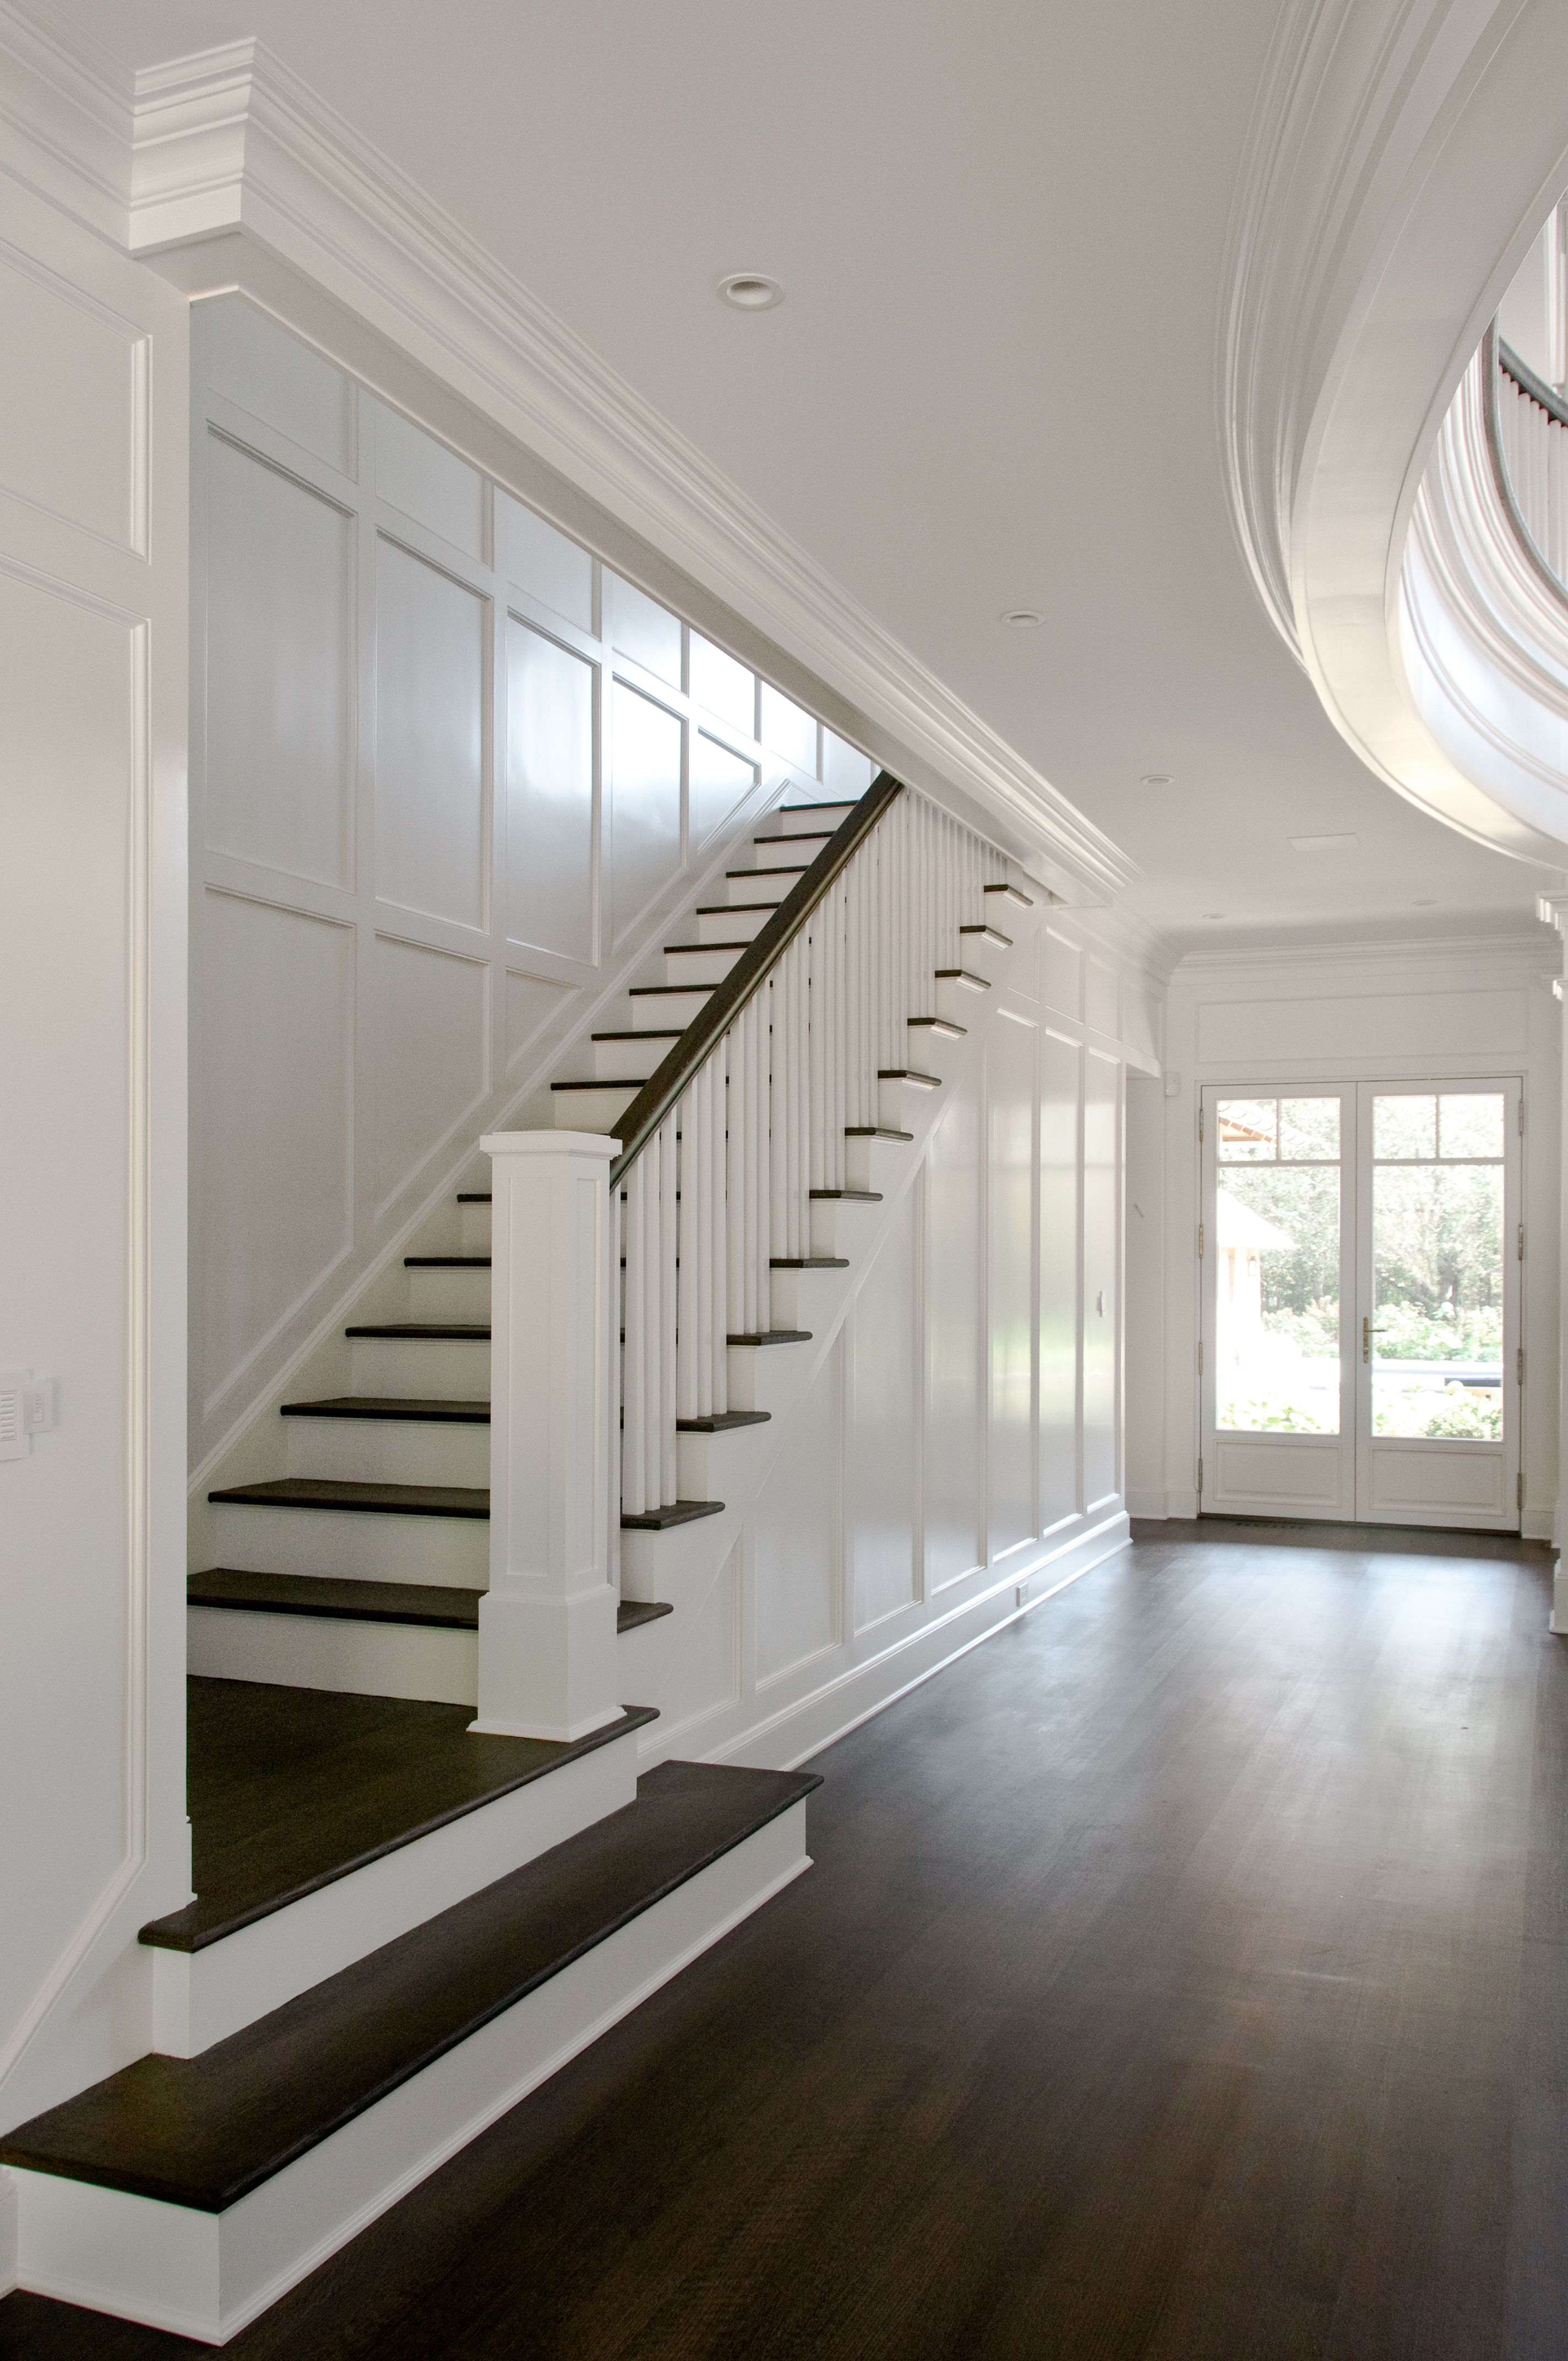 Your home improvements refference floor to ceiling room iders -  East Hampton House By Carmina Roth Interiors